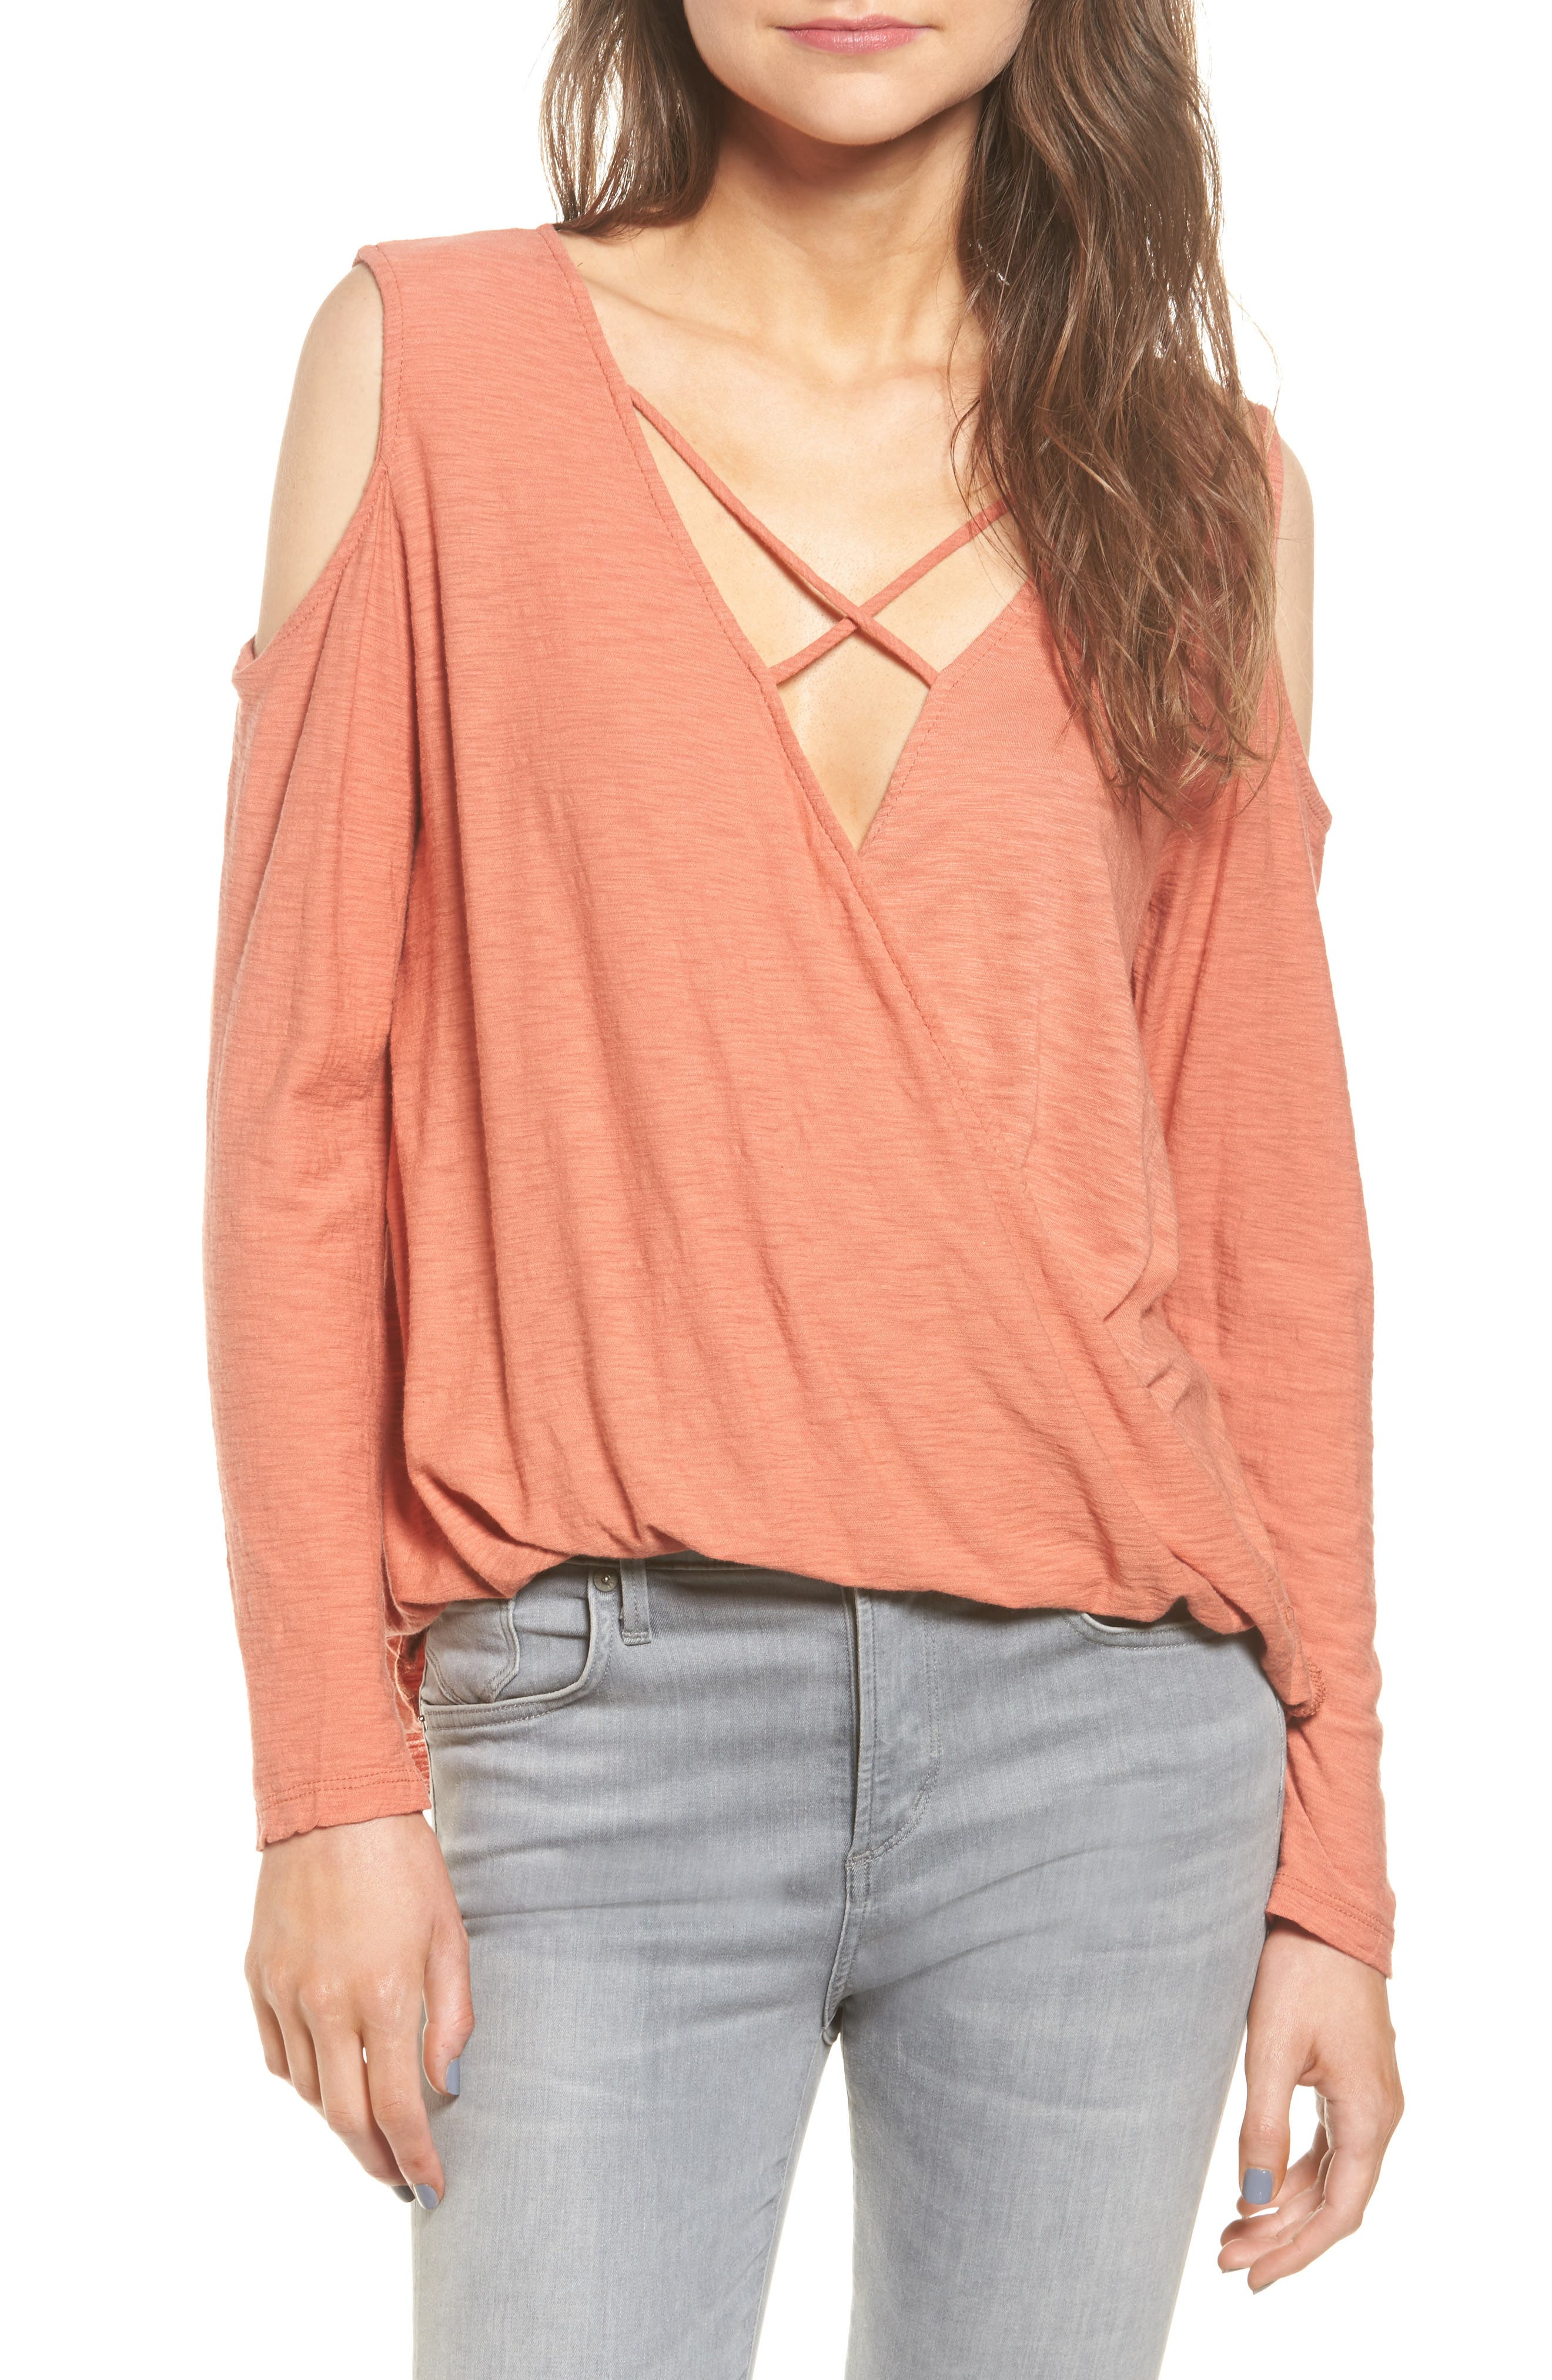 Michelle by Comune Anchor Cold Shoulder Surplice Tee